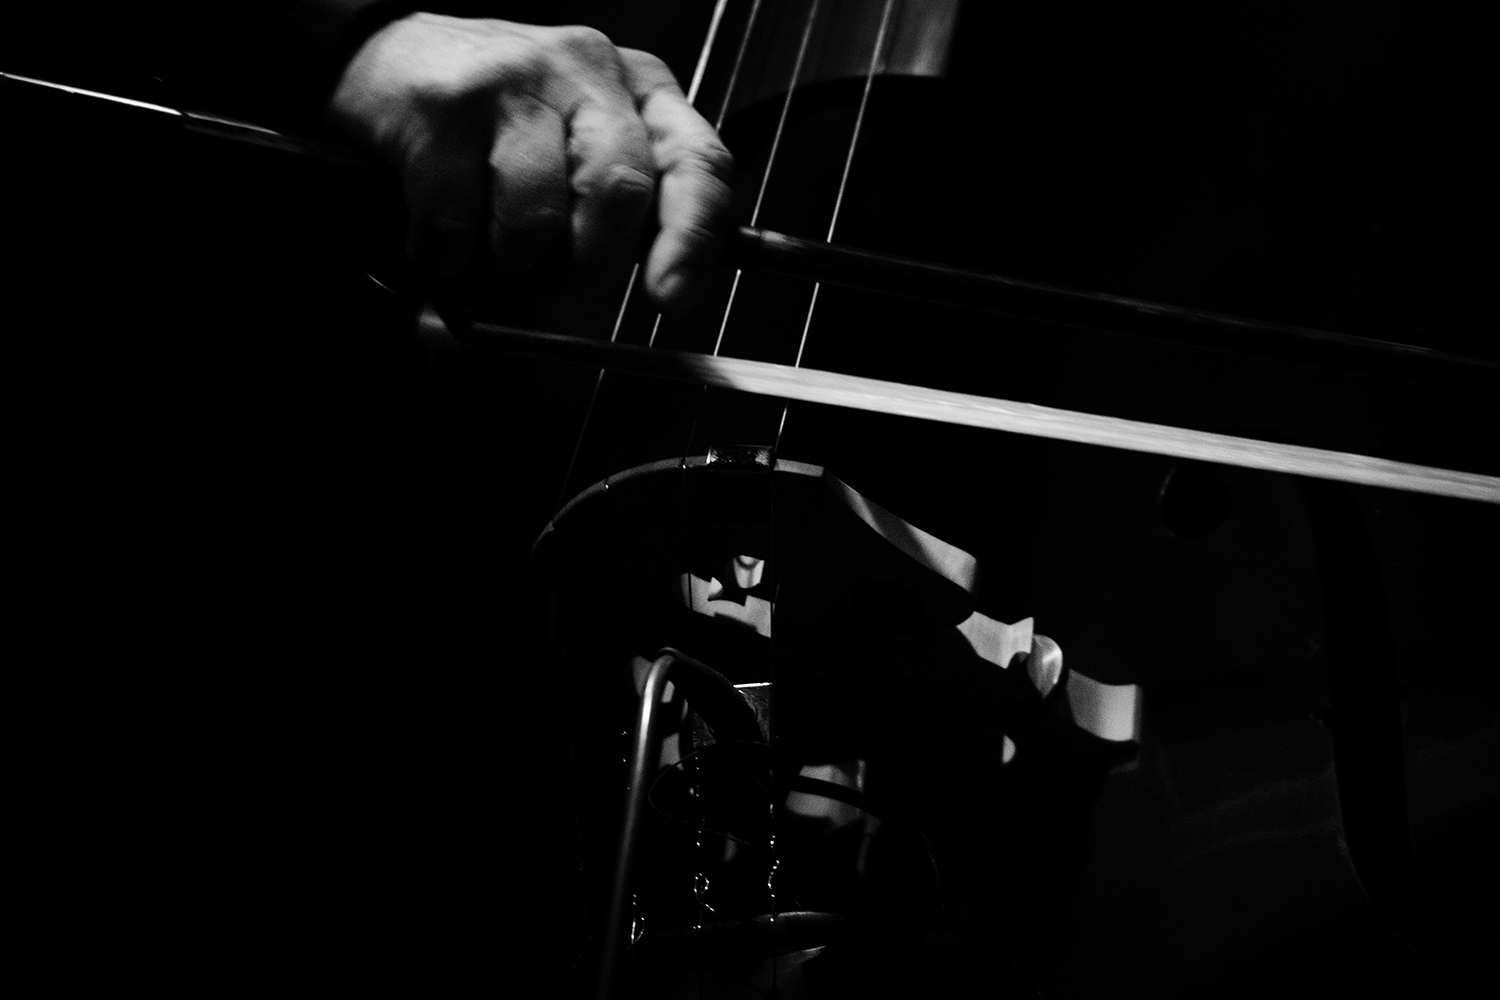 Arnold Dreyblatt & The Orchestra of Excited Strings by Laurent Orseau - Les Ateliers Claus - Brussels, Belgium #14